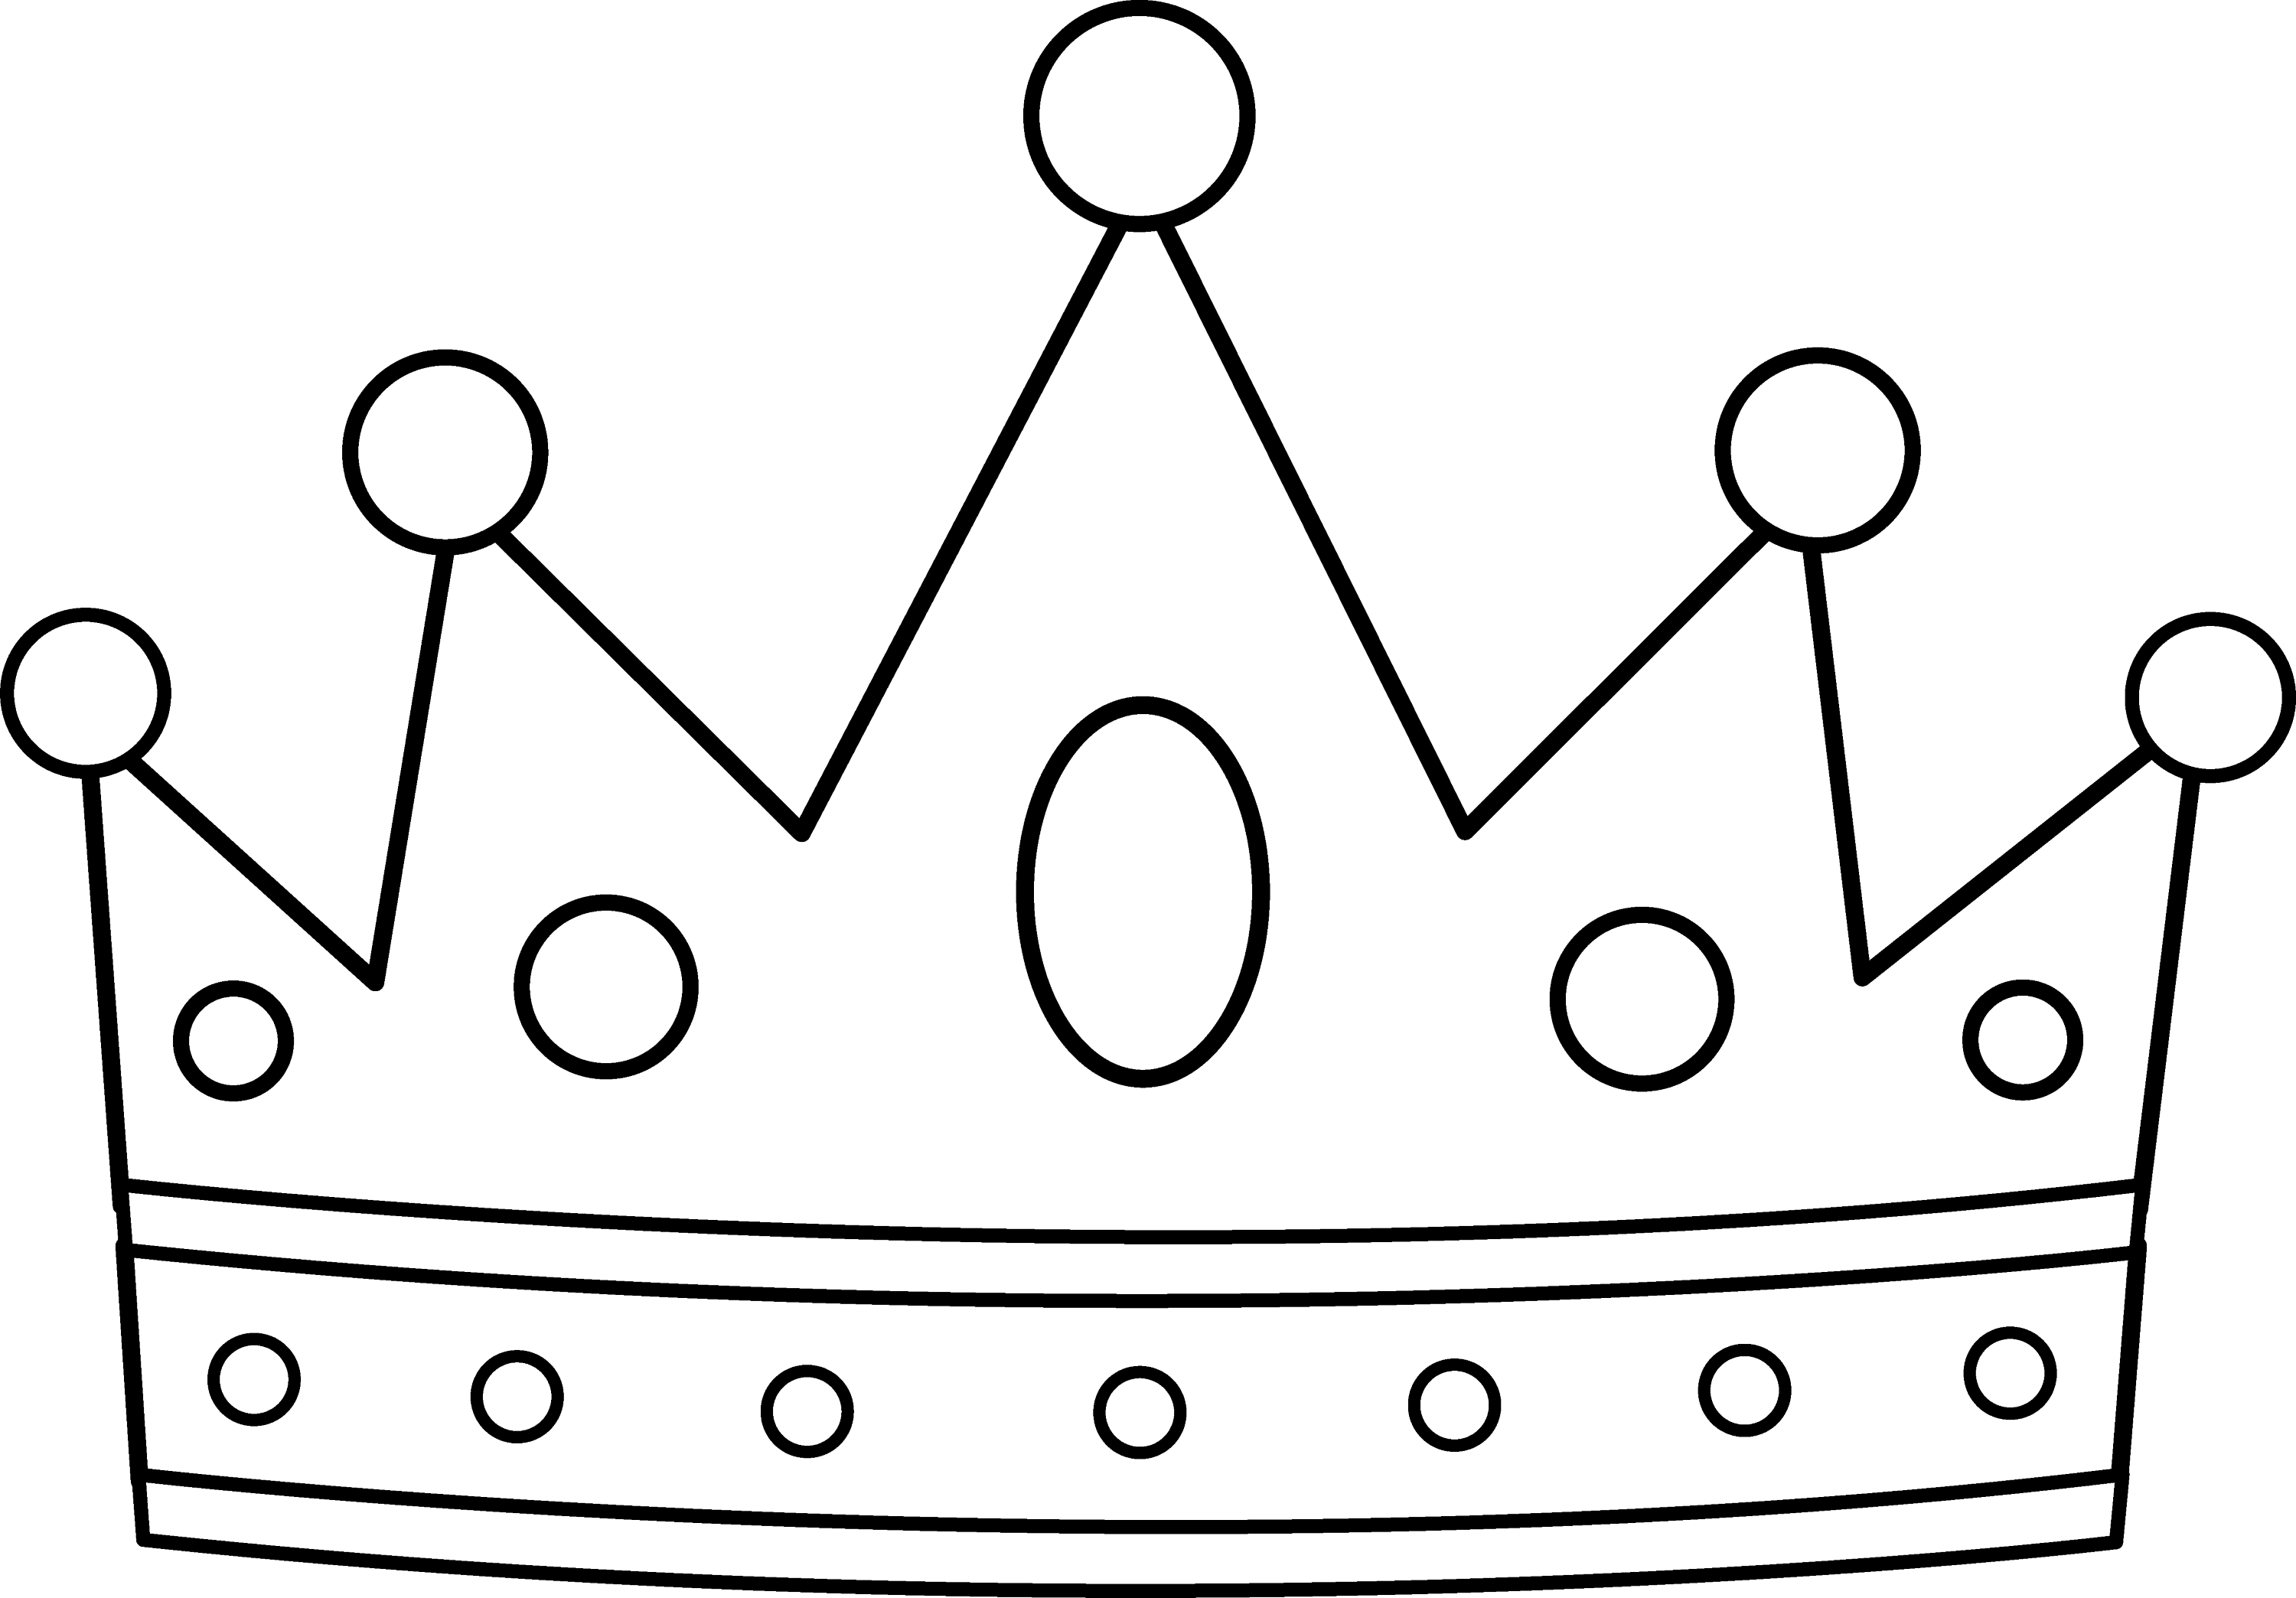 Royal crown coloring page free clip art for Kings crown template for kids